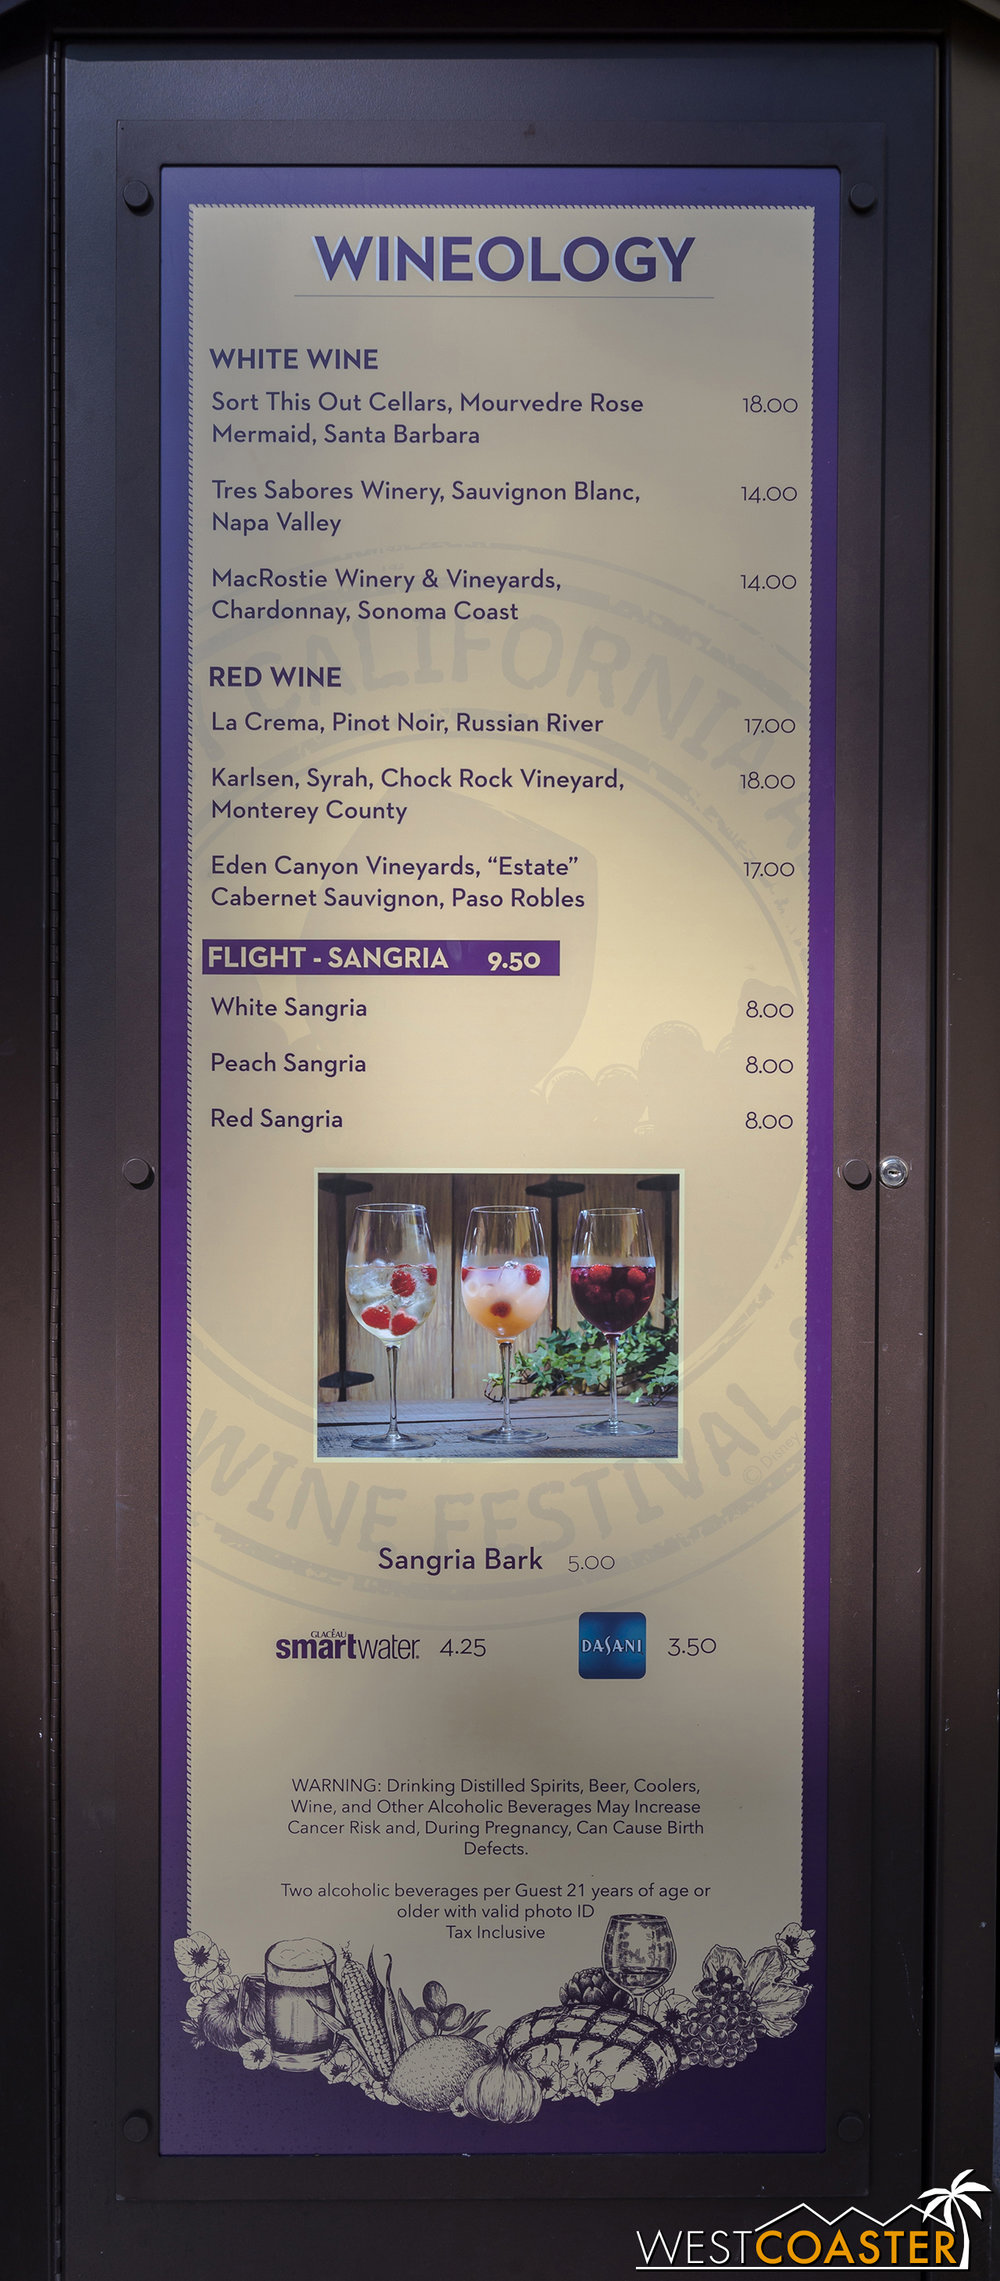 DLR-17_0314-G-Menu-14-Wineology.jpg